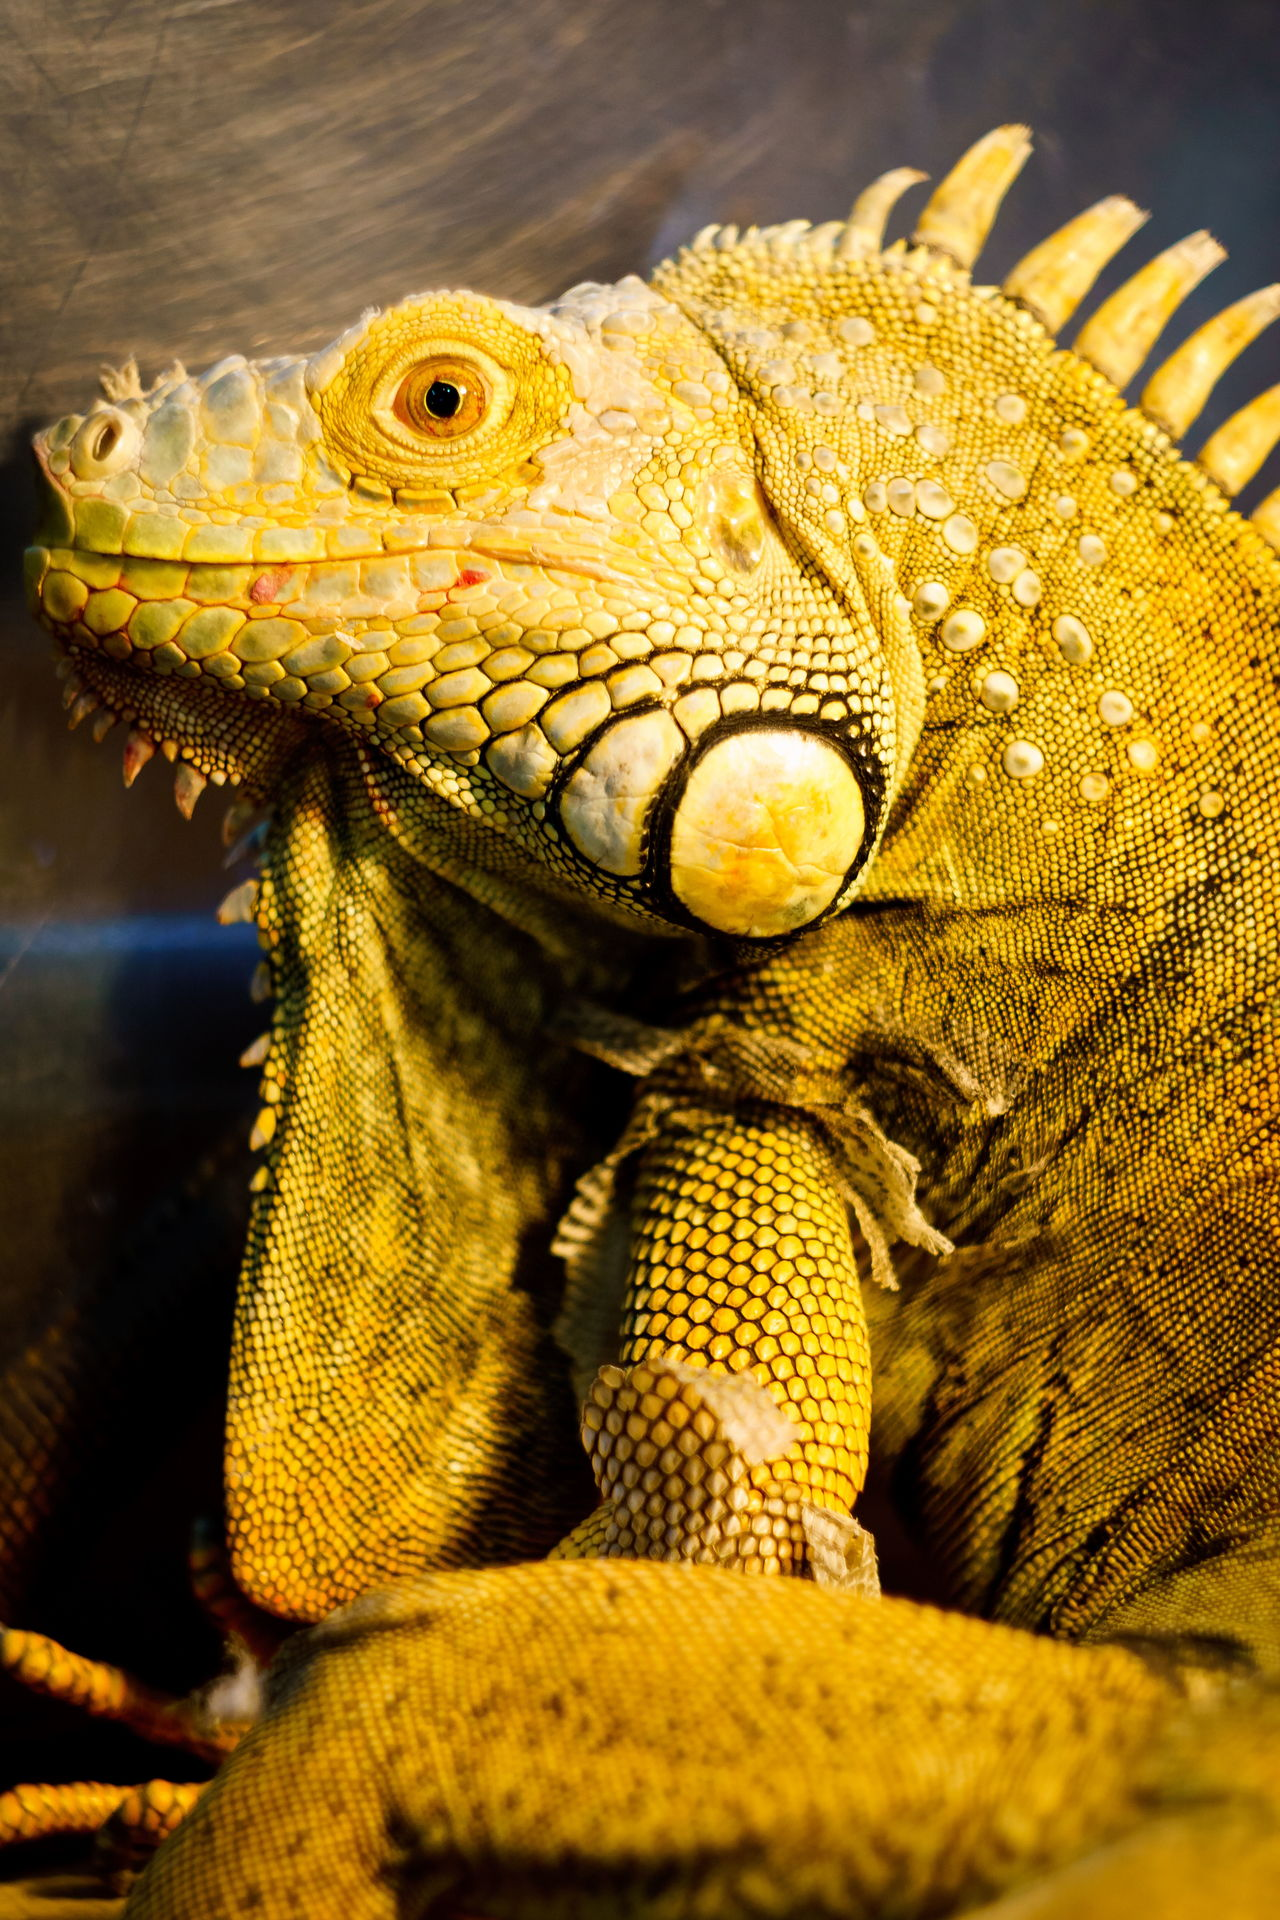 гляделки с God'zилкой Animal Scale Animal Themes Animal Wildlife Animals In The Wild Bearded Dragon Close-up Day Helios 44m-6 Iguana Lizard Nature No People One Animal Outdoors Reptile Sony A6000 Textured  контактный зоопарк